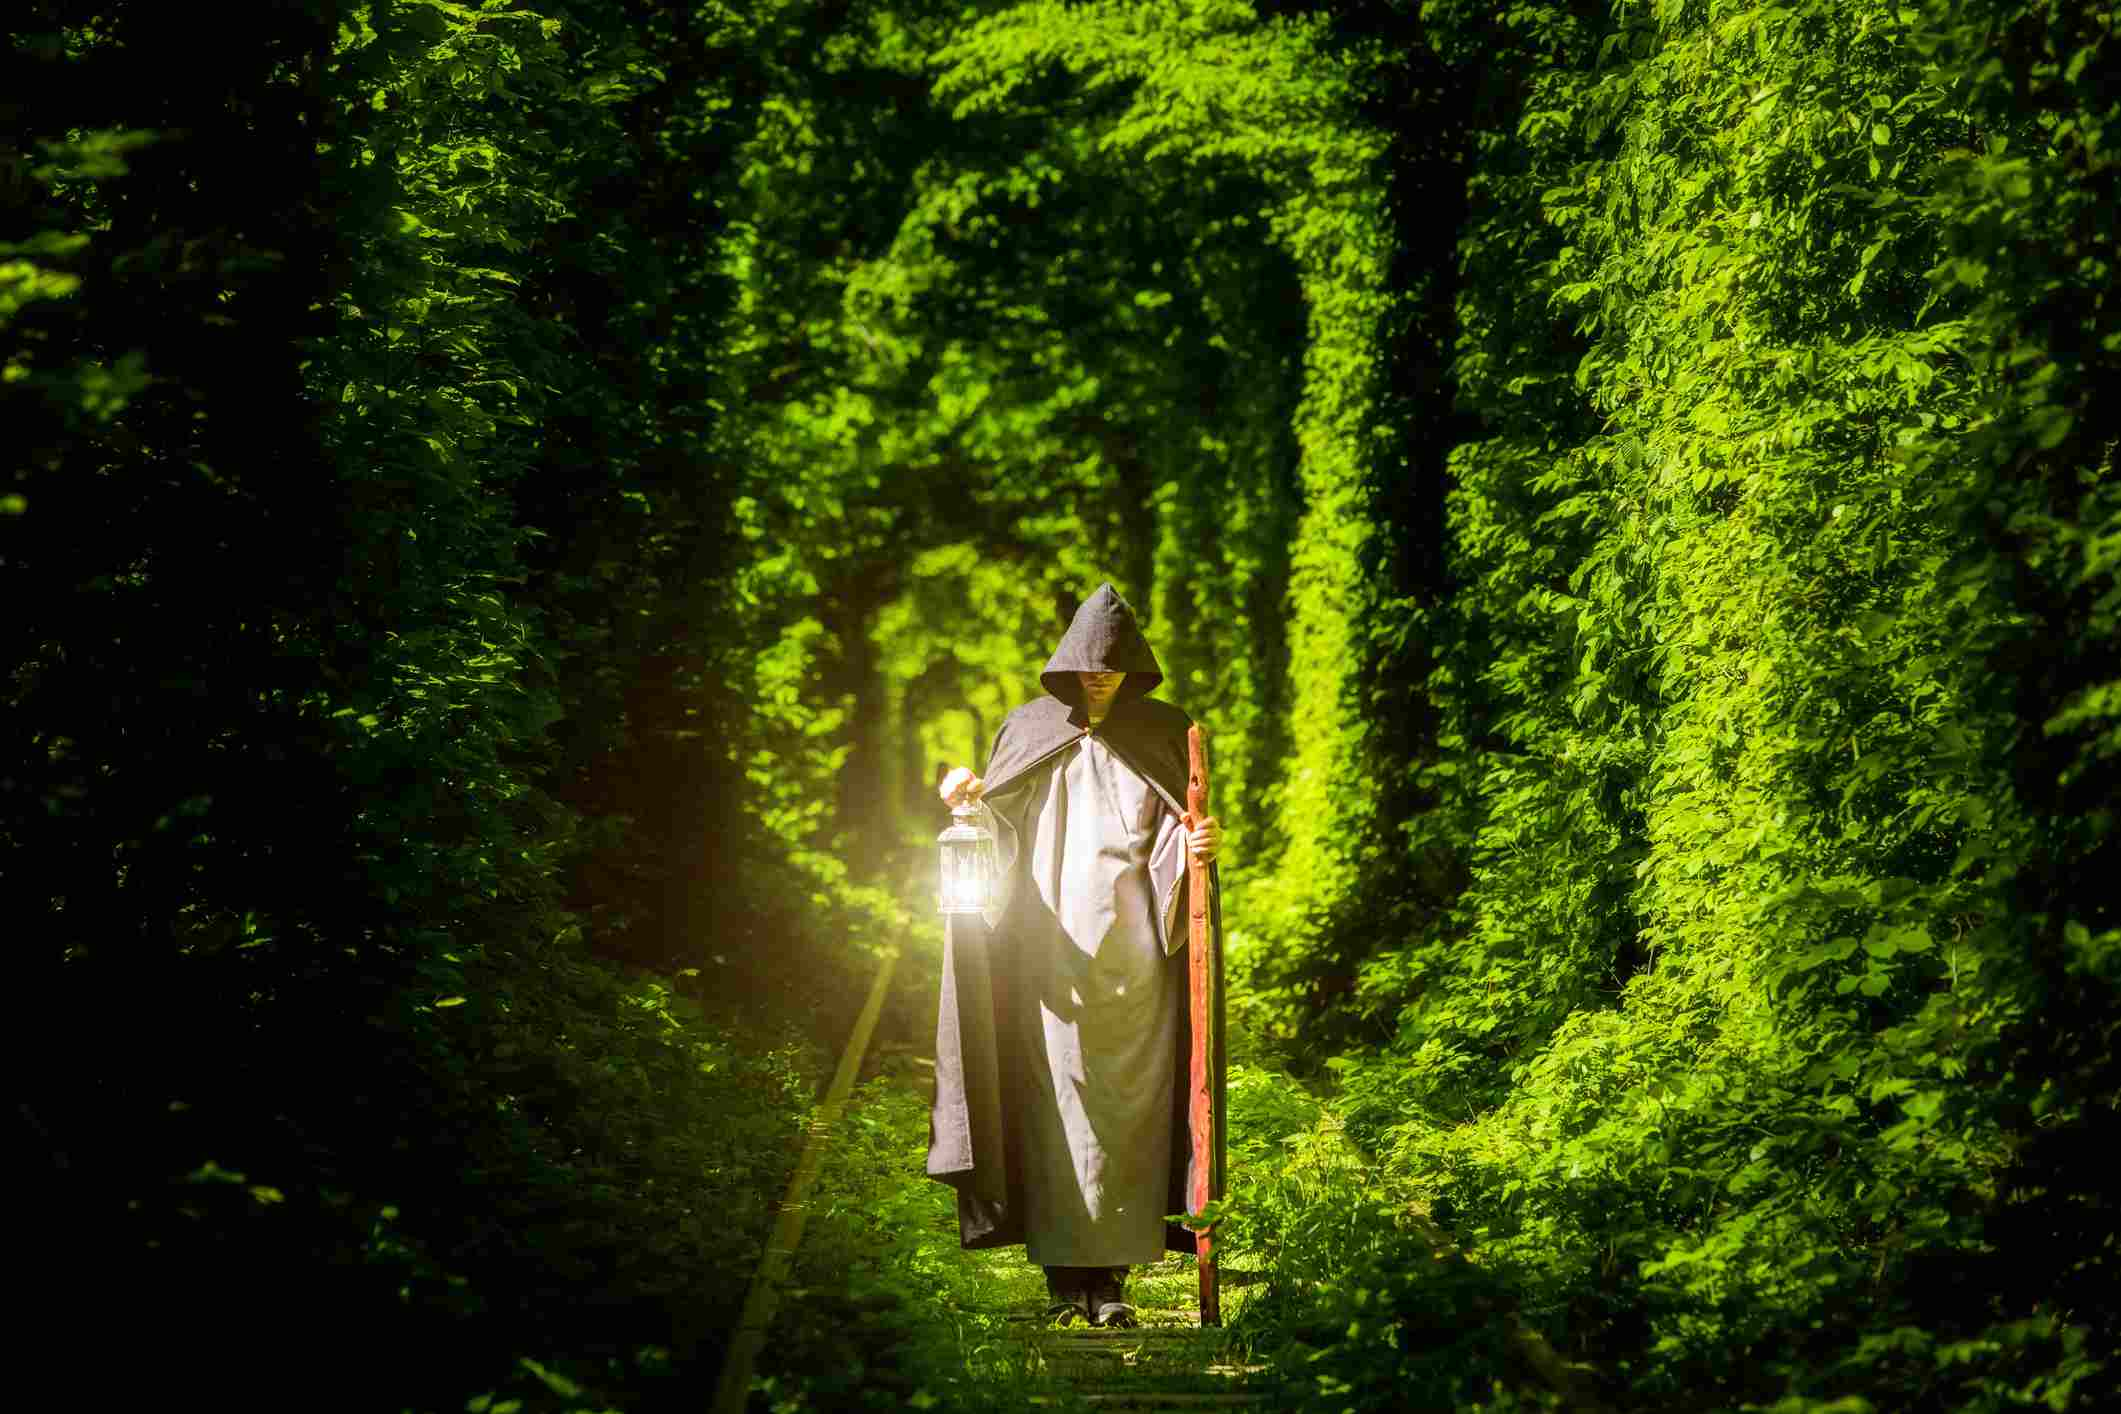 Man with lantern and staff in woods